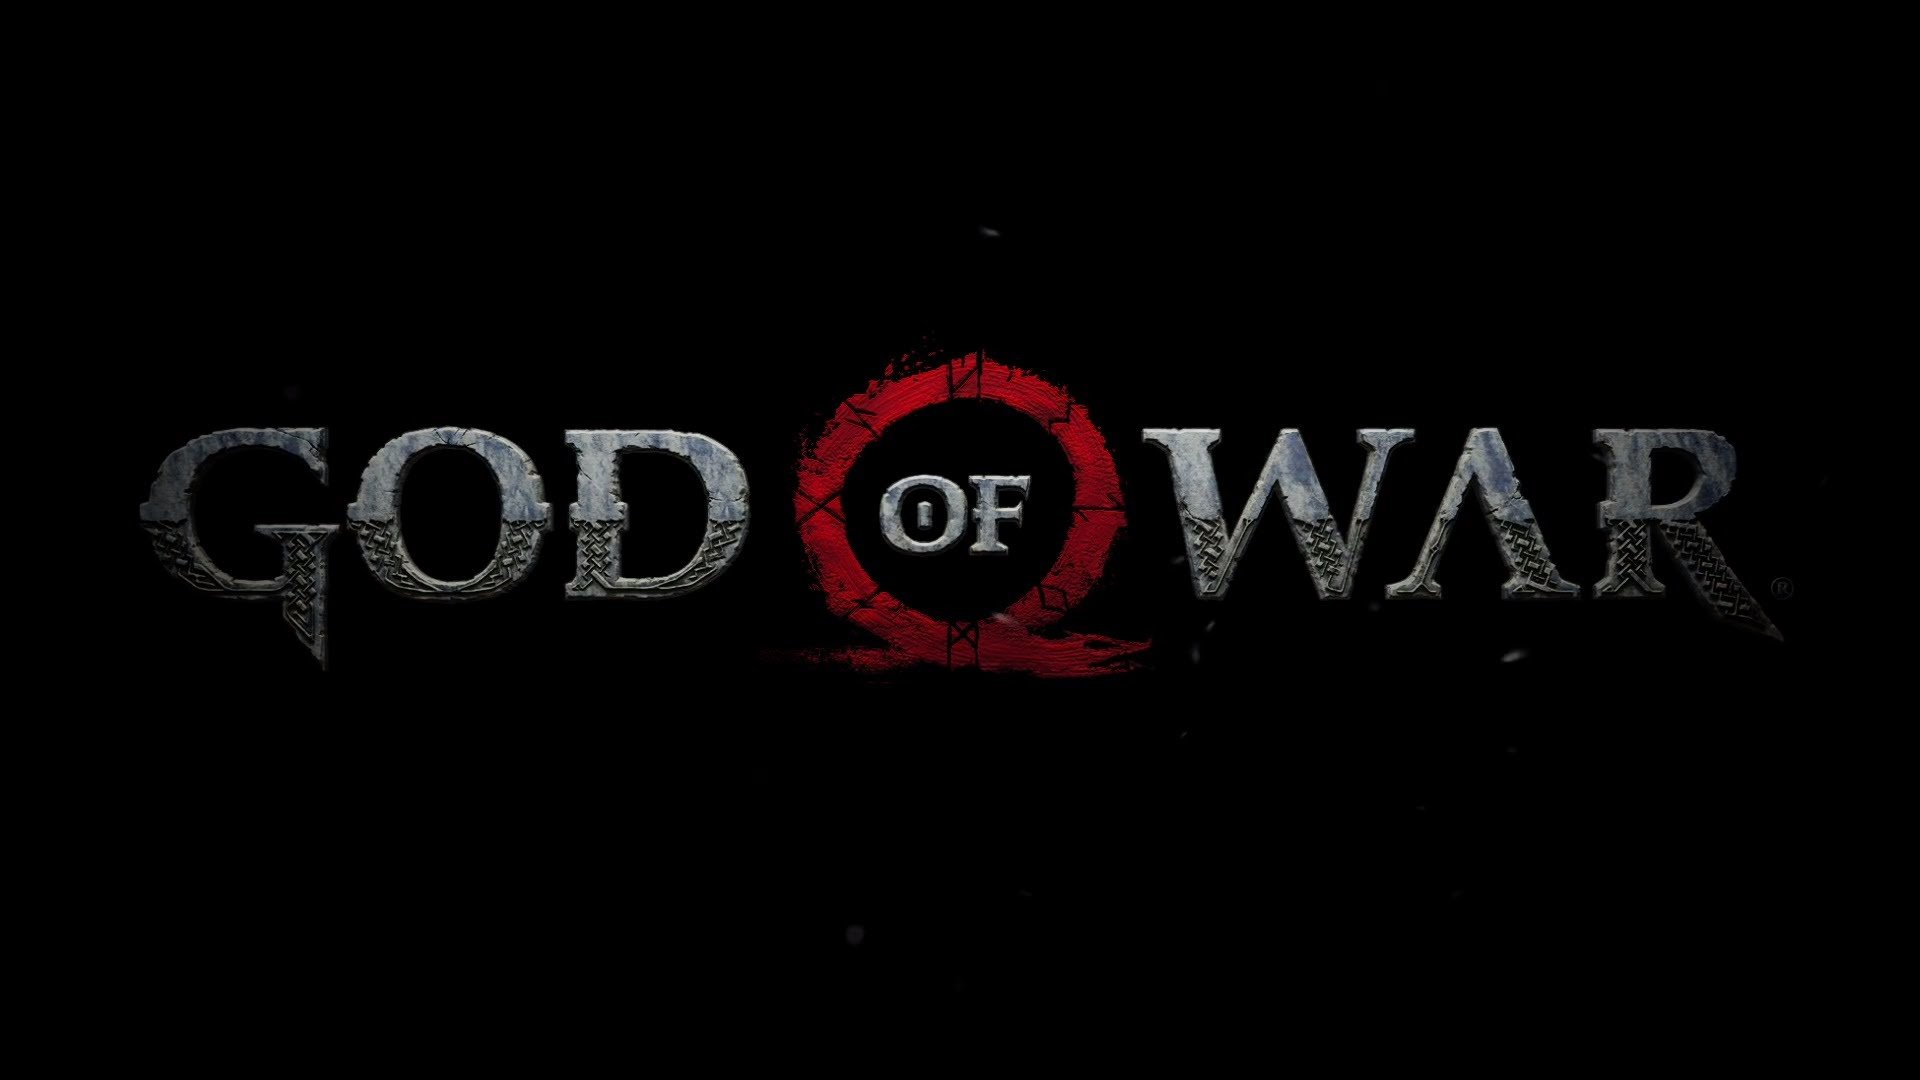 Download Hd 1920x1080 God Of War 4 Desktop Wallpaper Id